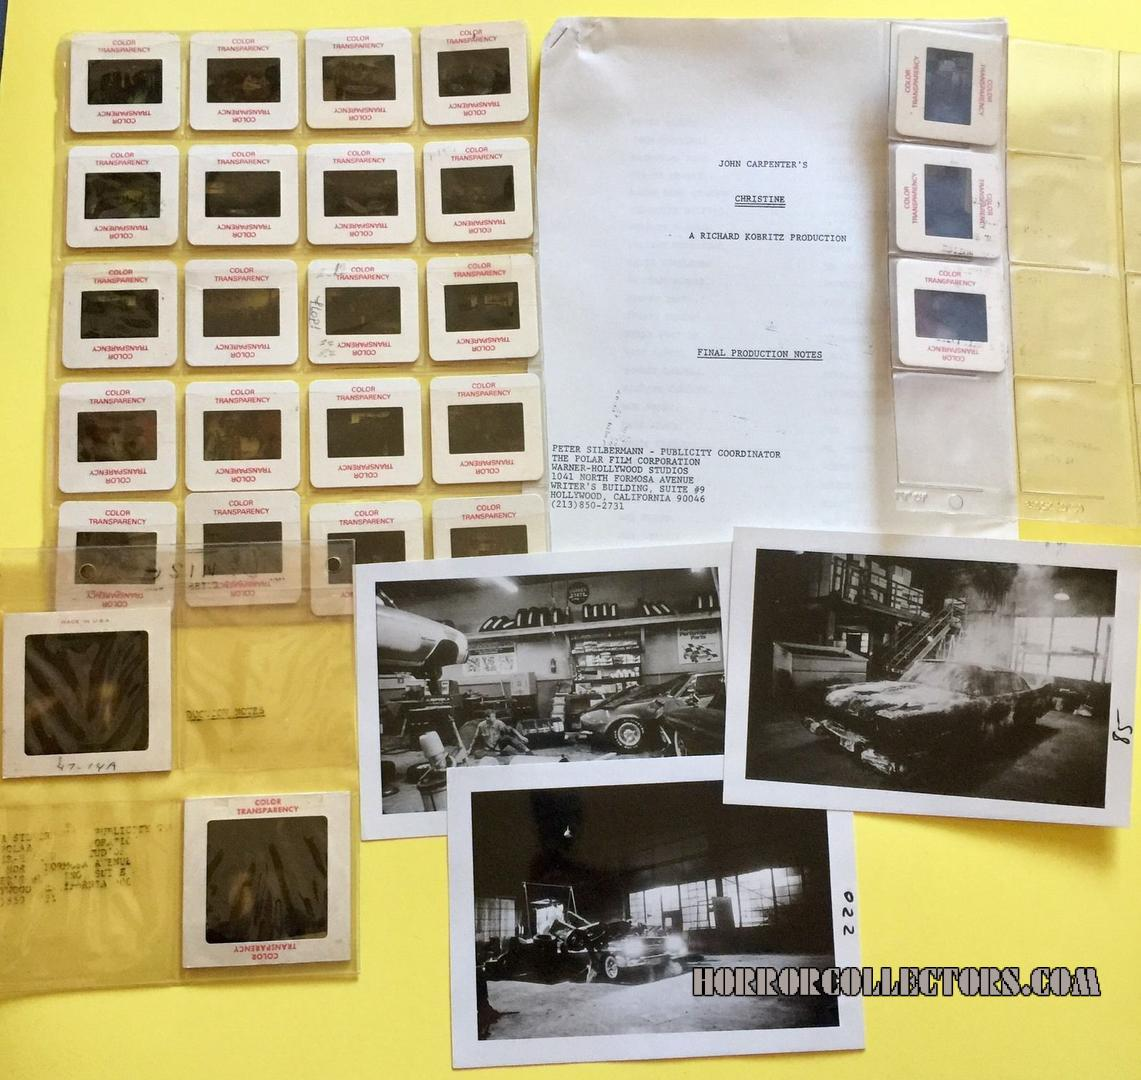 CHRISTINE 1983 Press Kit and publicity material John Carpenter Stephen King Columbia Pictures